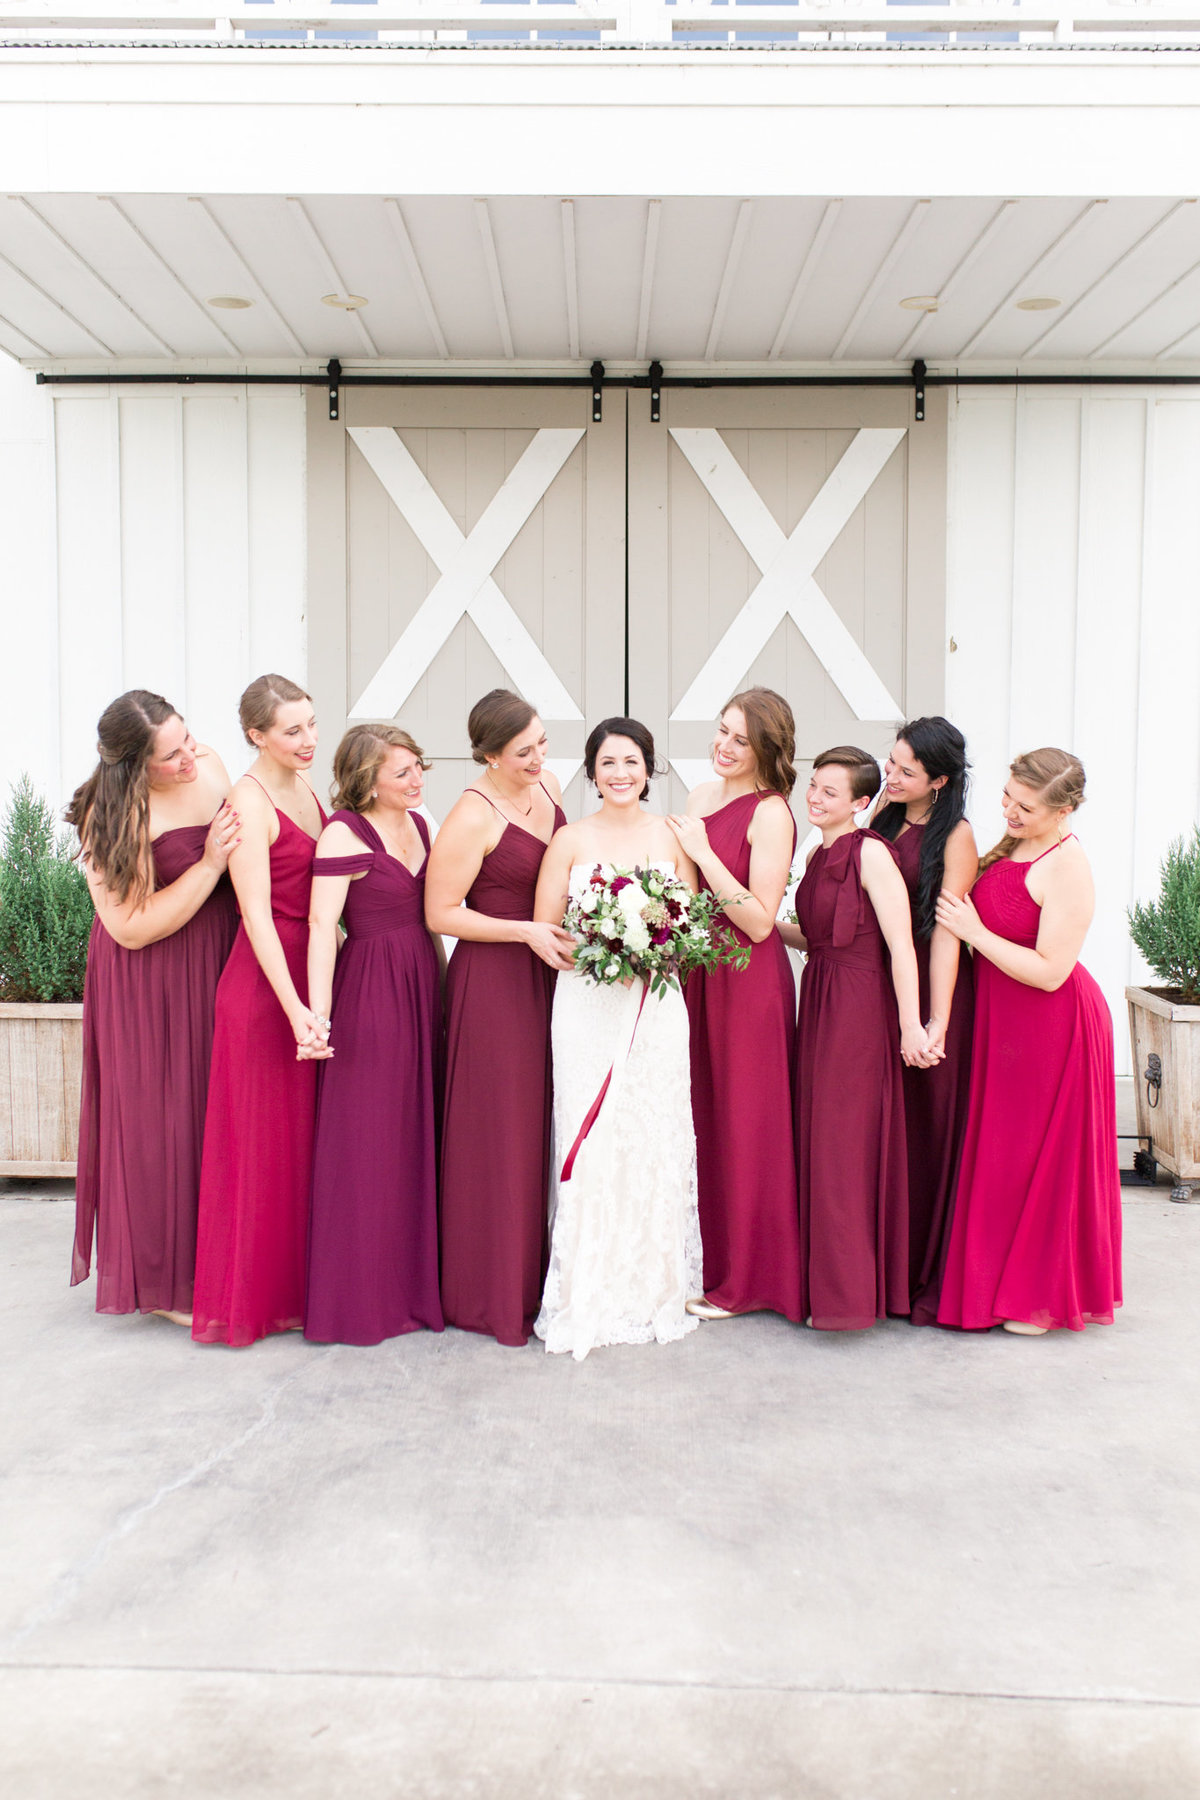 Dallas Wedding Photographers | Sami Kathryn Photography | Portfolio: Nick & Sam Wedding | The Nest at Ruth Farms